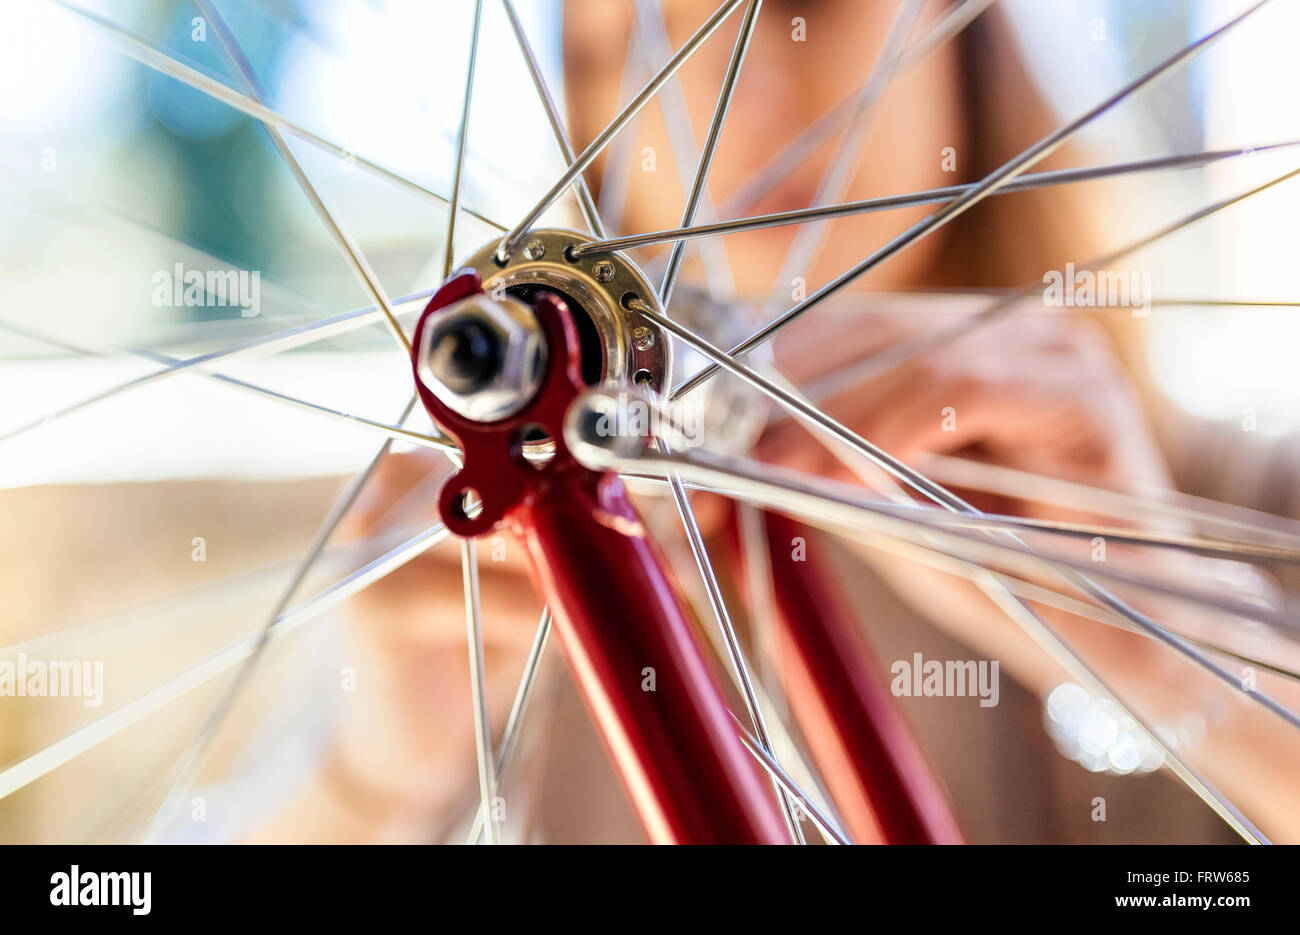 Young woman and detail of a bicycle tire - Stock Image